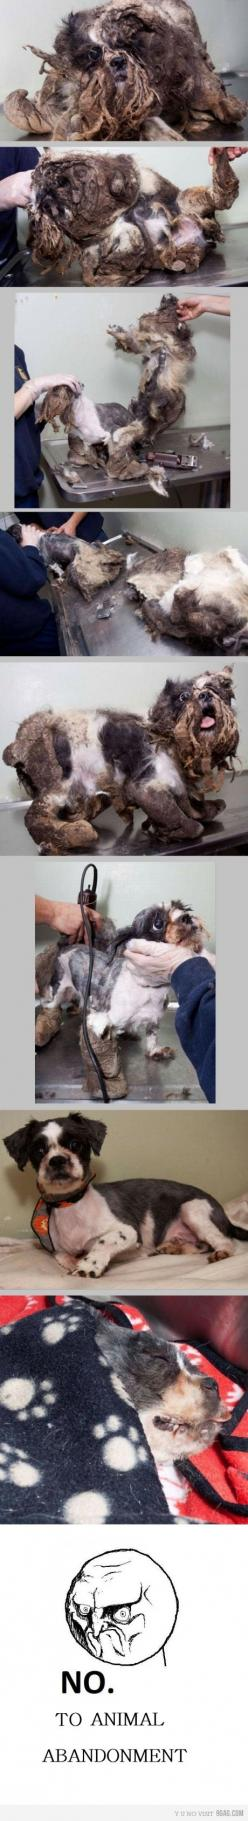 This is this dogs first haircut. You have to double click to get to see it up close. At first I wasn't sure what had happened to this poor little guy.: Doggie ?S, Animal Rights, Animal Cruelty, Pet, Animal Abuse, First Haircut, Animal Abandonment, Poo